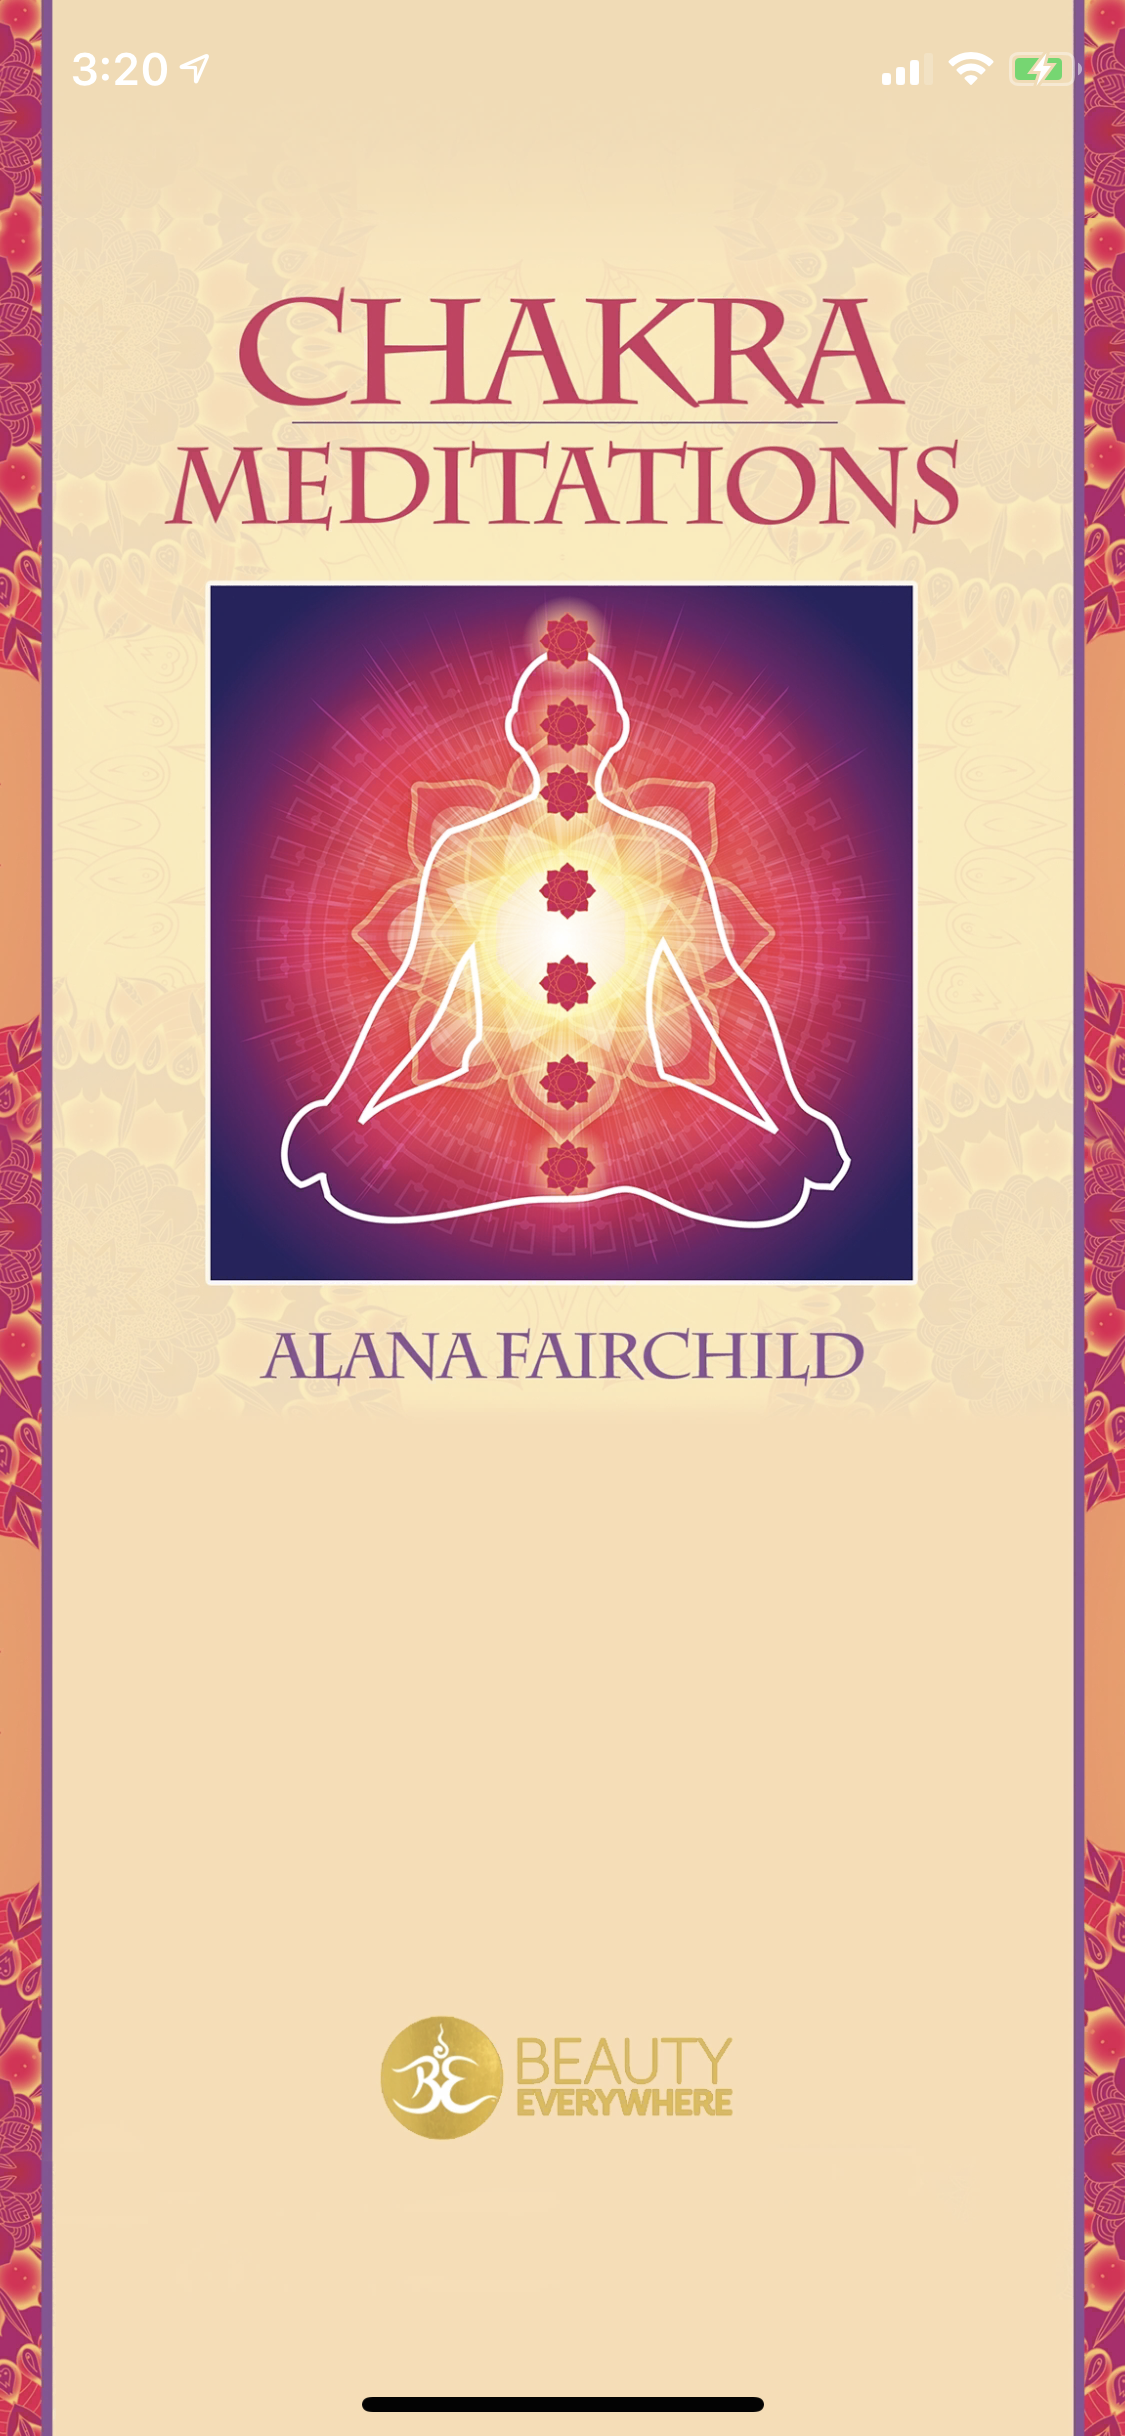 Chakra Meditations with Alana Fairchild